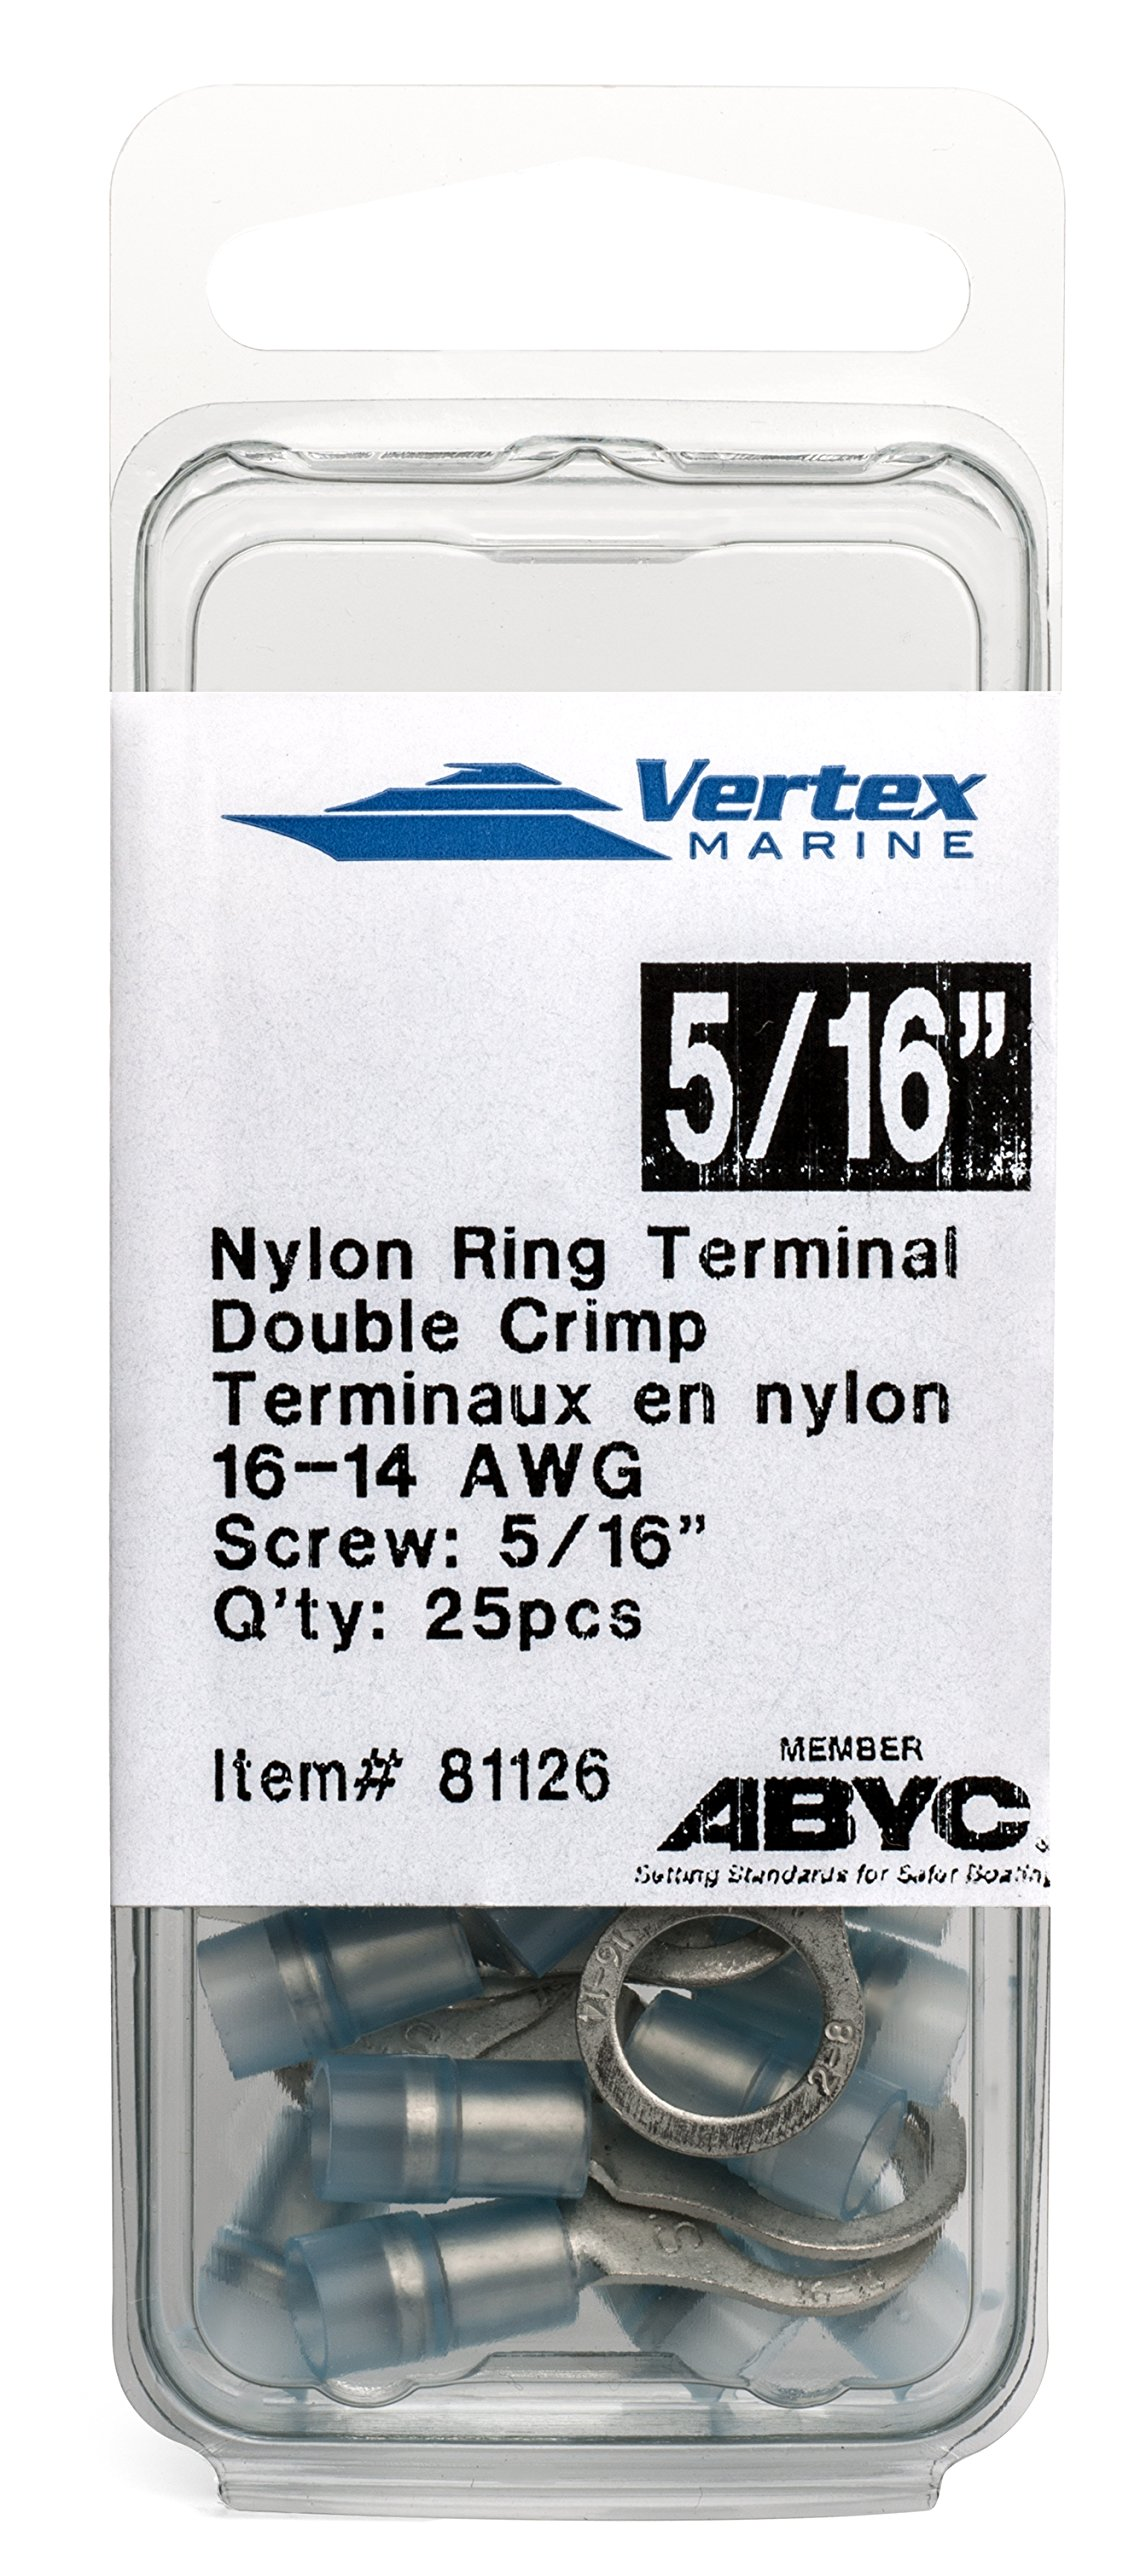 Ring Terminal Marine Grade - Nylon Insulated - Double Crimp - A81126 - 16-14 AWG - 5/16''Stud - 25 Pack